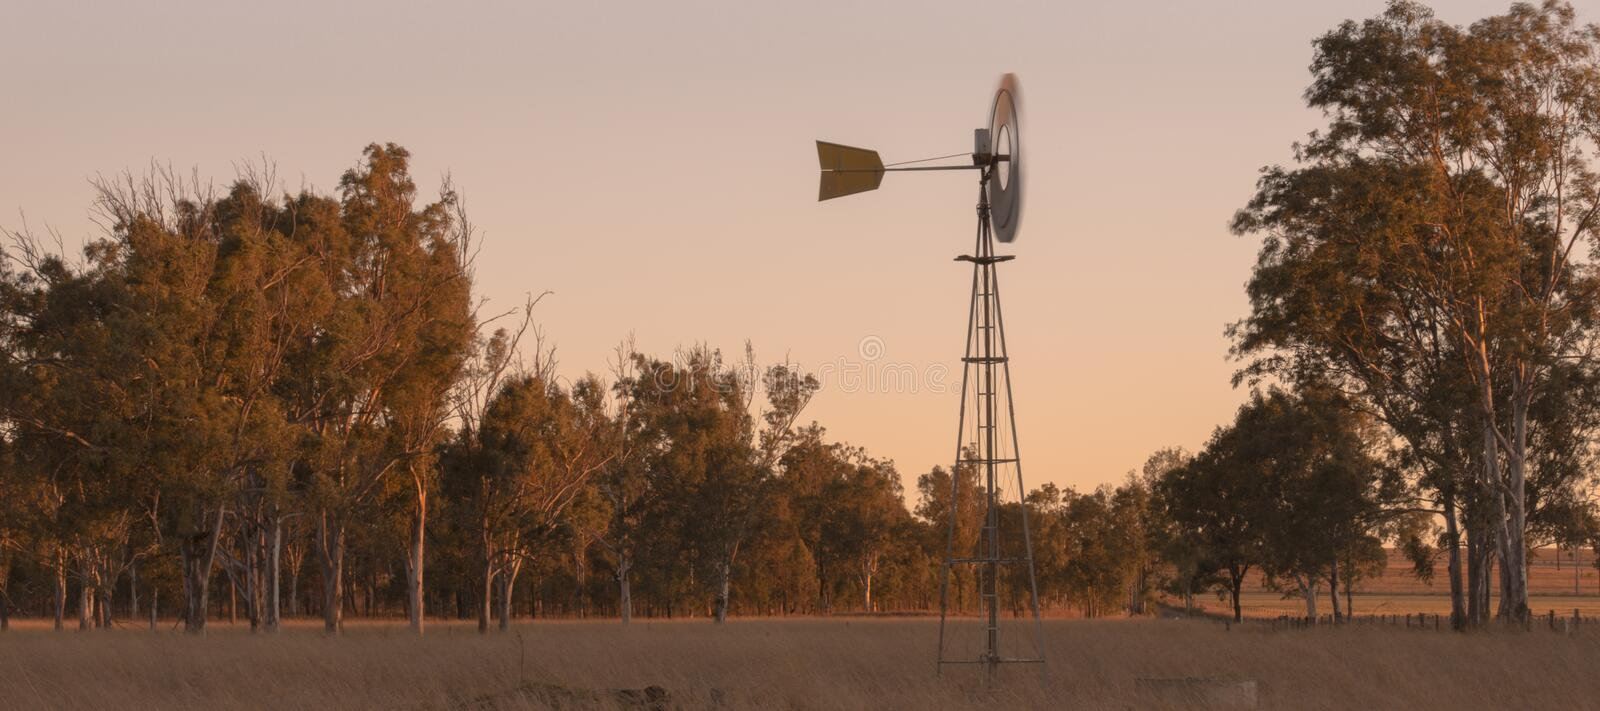 Windmill in a paddock stock photography